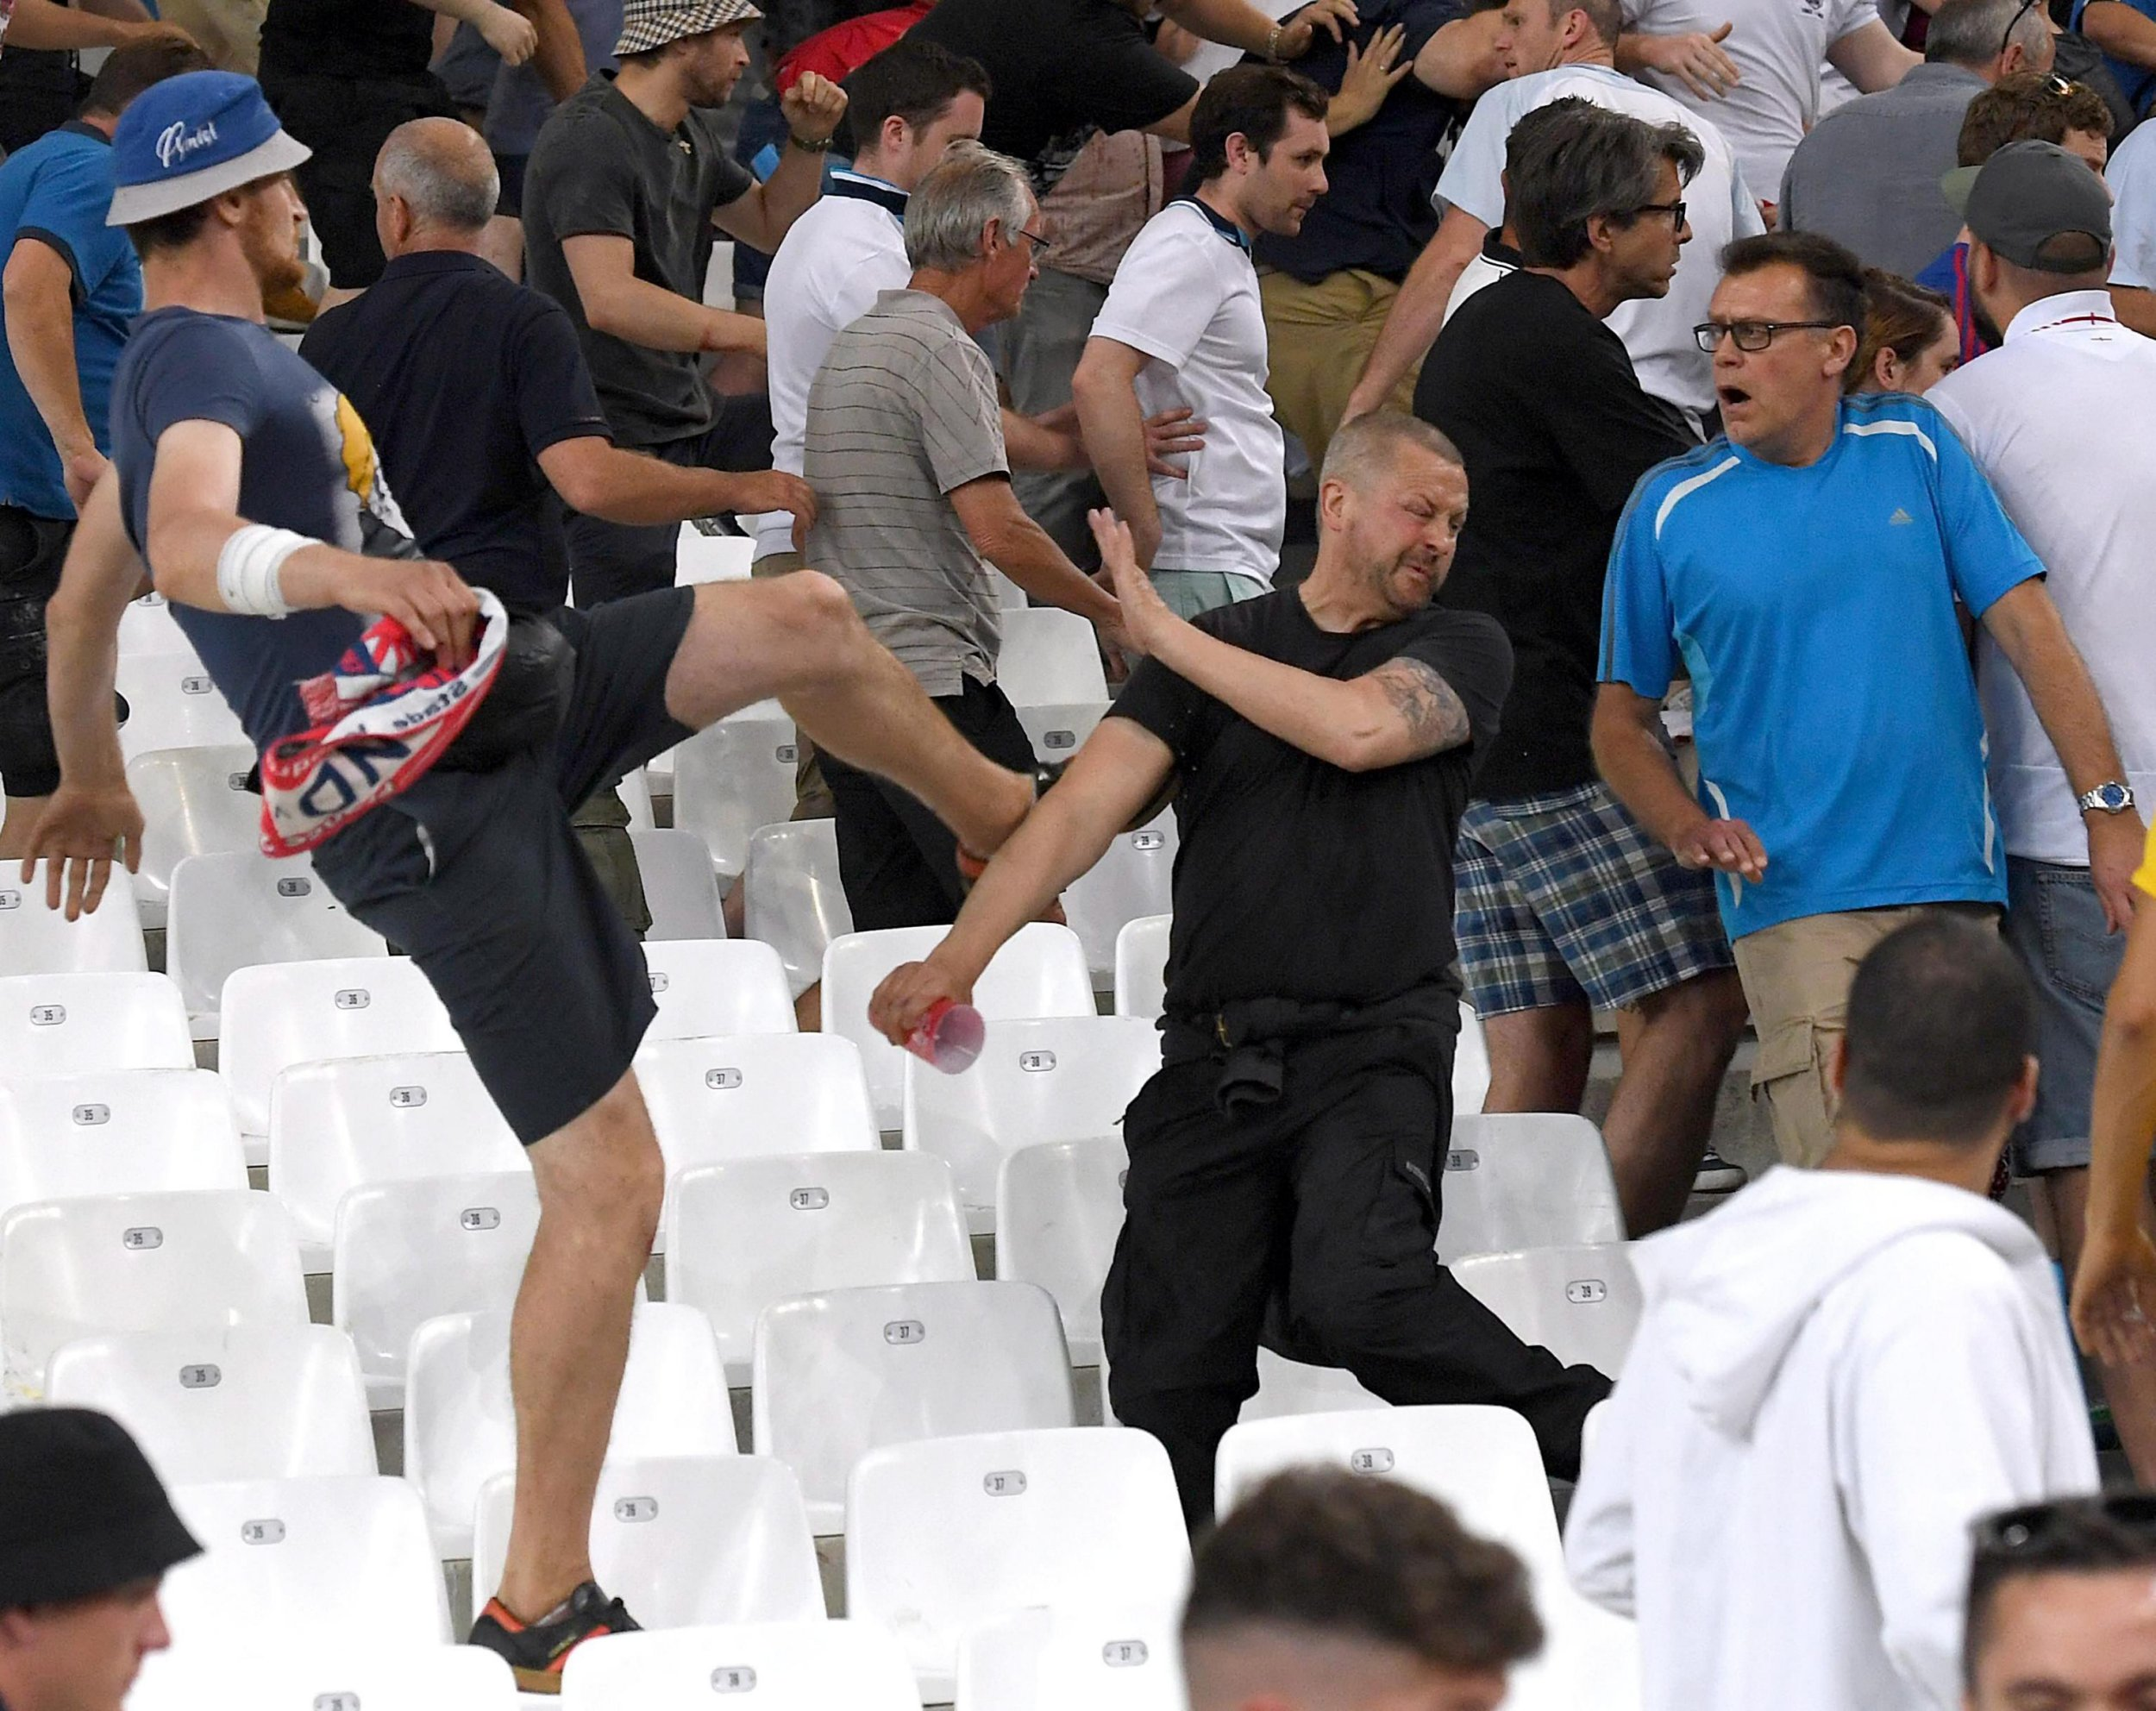 epa05358465 Supporters clash in the stands after the UEFA EURO 2016 group B preliminary round match between England and Russia at Stade Velodrome in Marseille, France, 11 June 2016. (RESTRICTIONS APPLY: For editorial news reporting purposes only. Not used for commercial or marketing purposes without prior written approval of UEFA. Images must appear as still images and must not emulate match action video footage. Photographs published in online publications (whether via the Internet or otherwise) shall have an interval of at least 20 seconds between the posting.) EPA/DANIEL DAL ZENNARO EDITORIAL USE ONLY